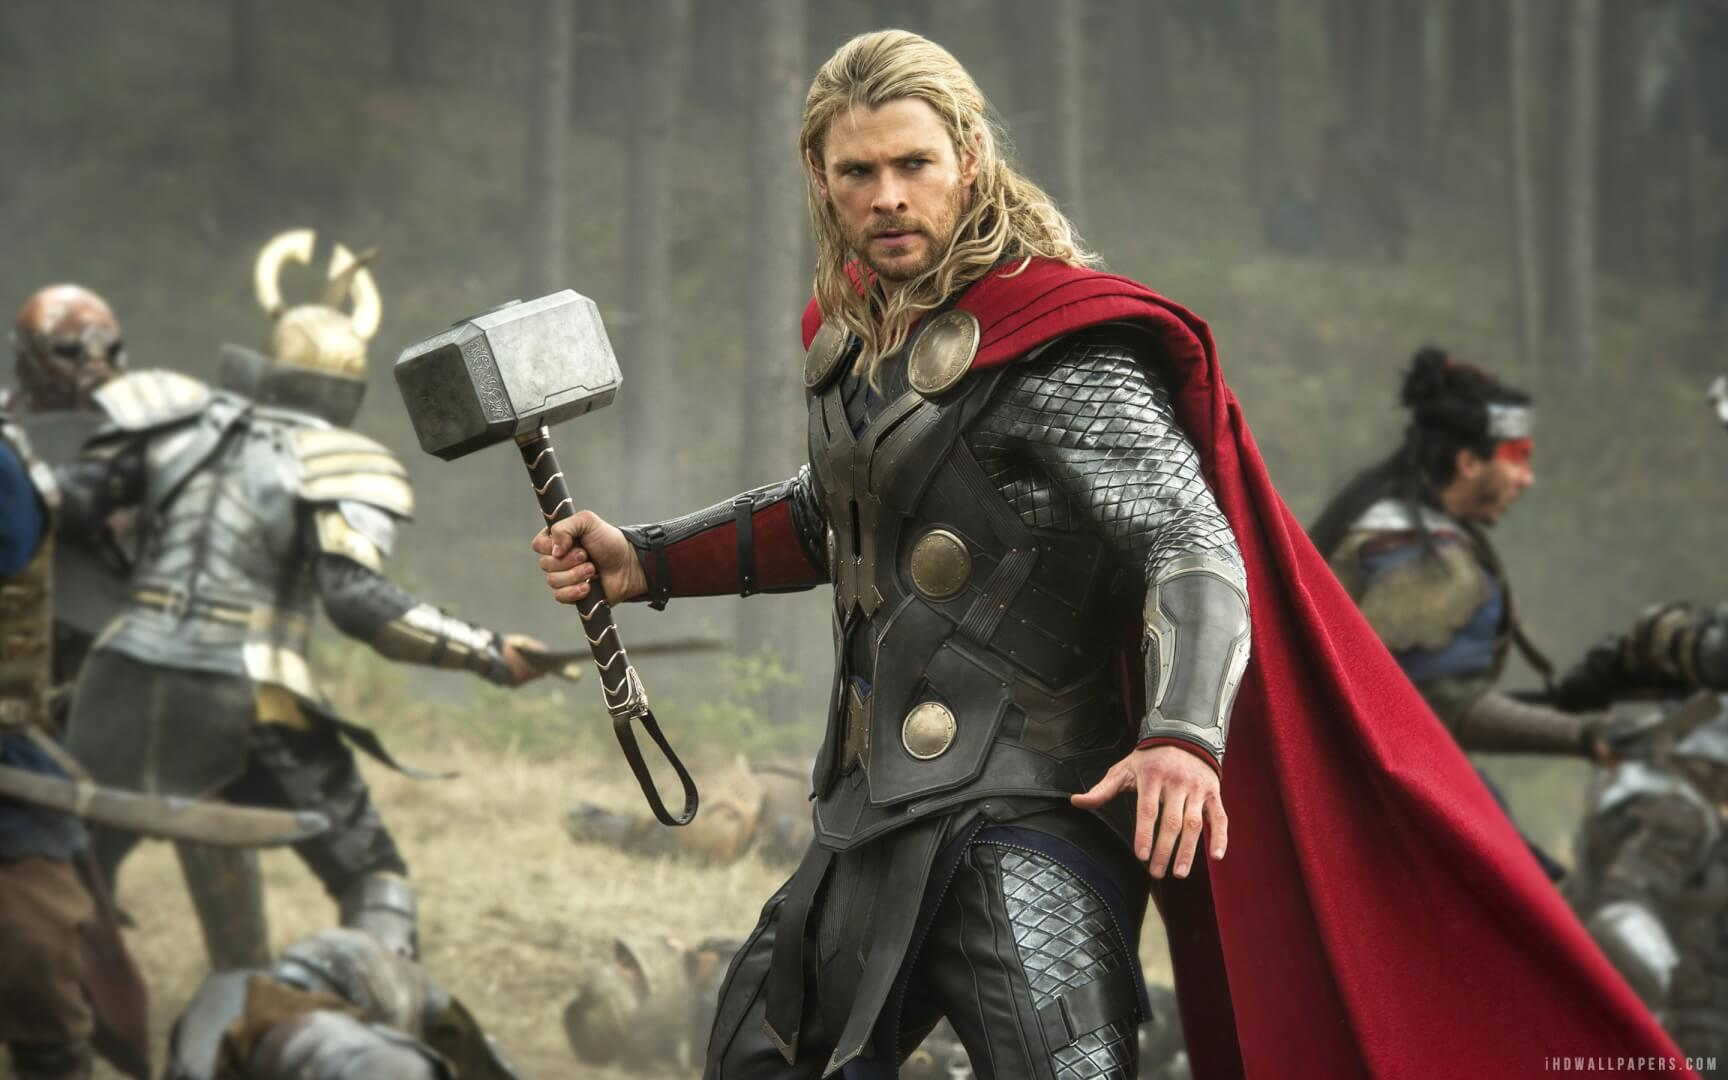 Have removed Thor the dark world trailer